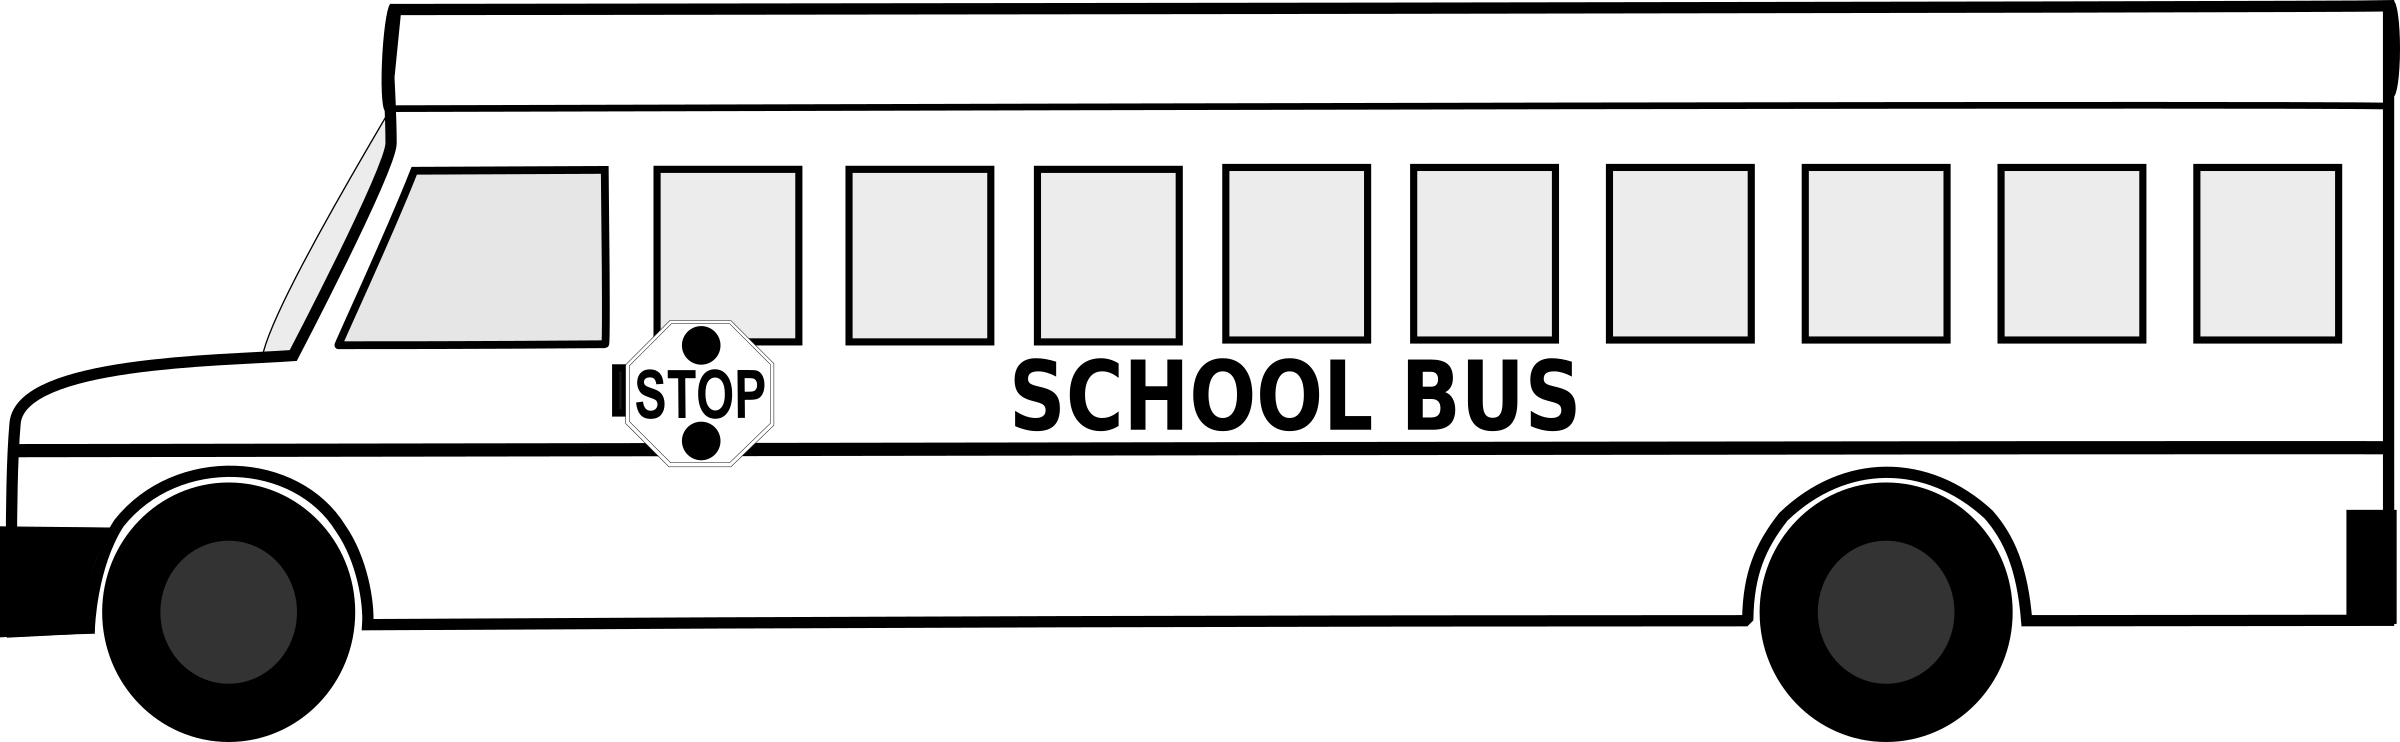 Big School Bus Black and White Free Clipart Icon by schoolfreeware